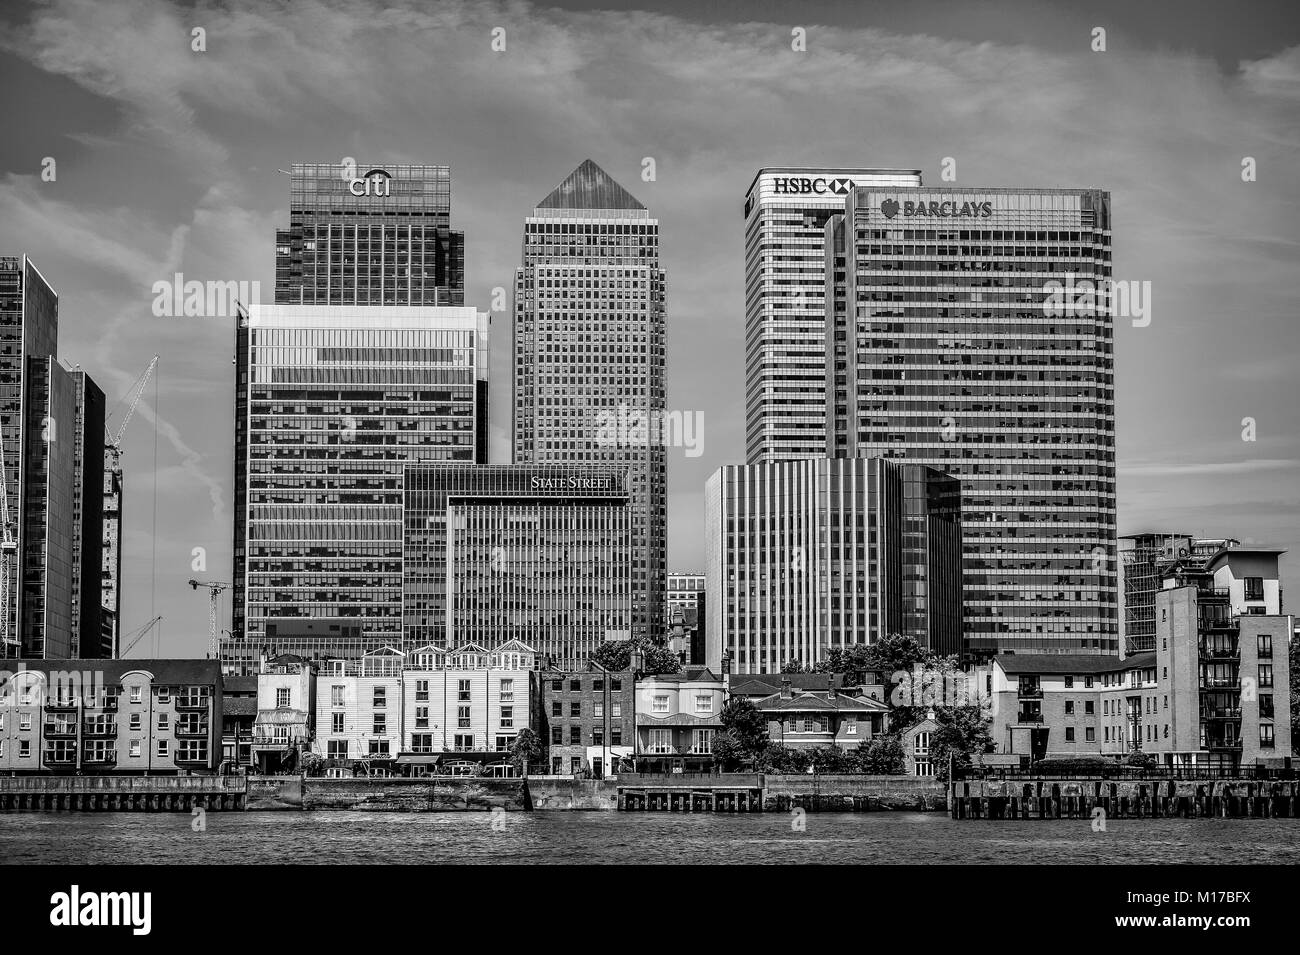 Financial Centre of Canary Wharf viewed from the River Thames - Stock Image